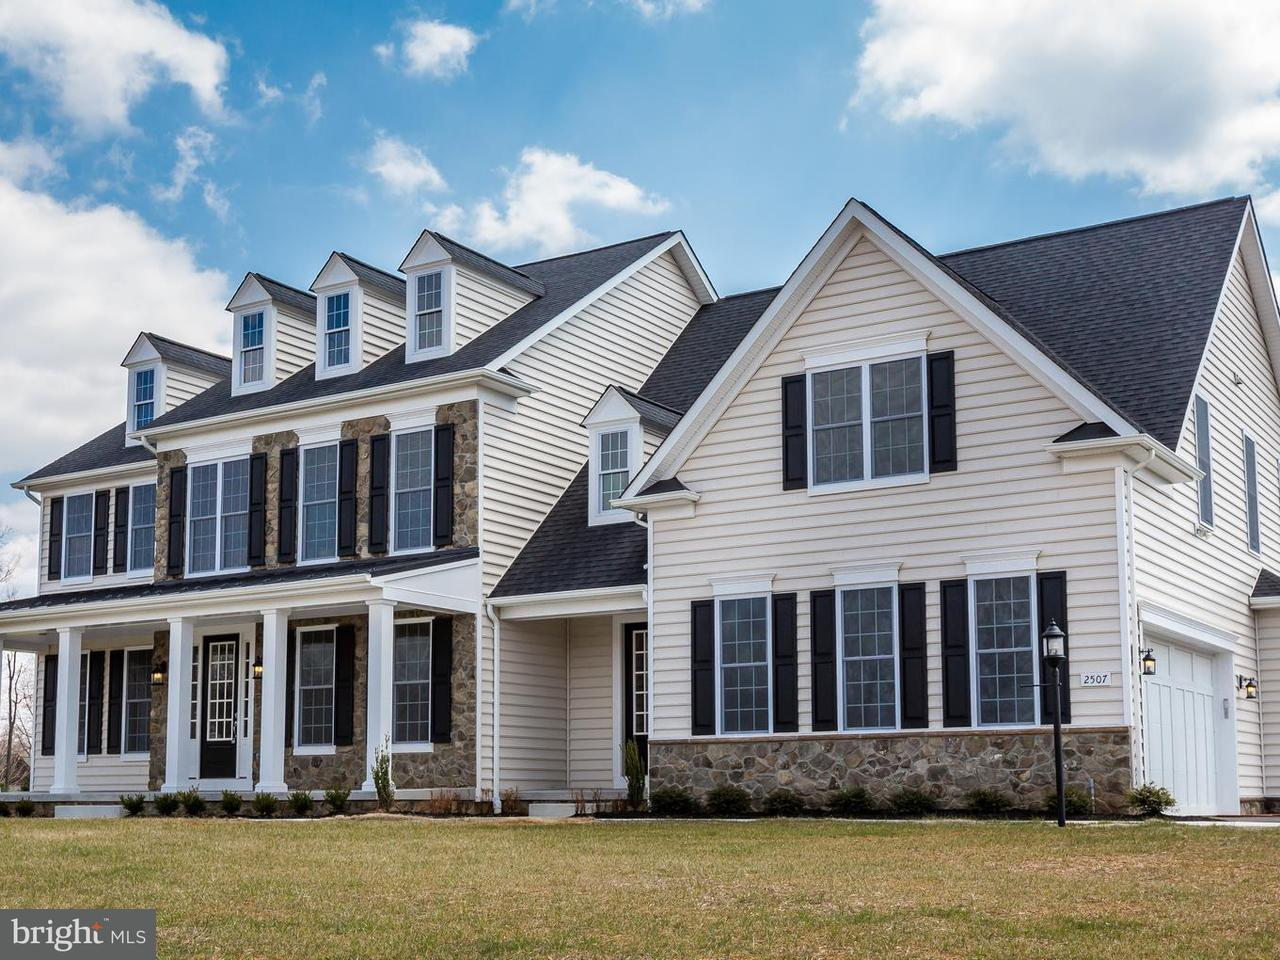 Single Family Home for Sale at 2507 Deer Meadow Court 2507 Deer Meadow Court Reisterstown, Maryland 21136 United States